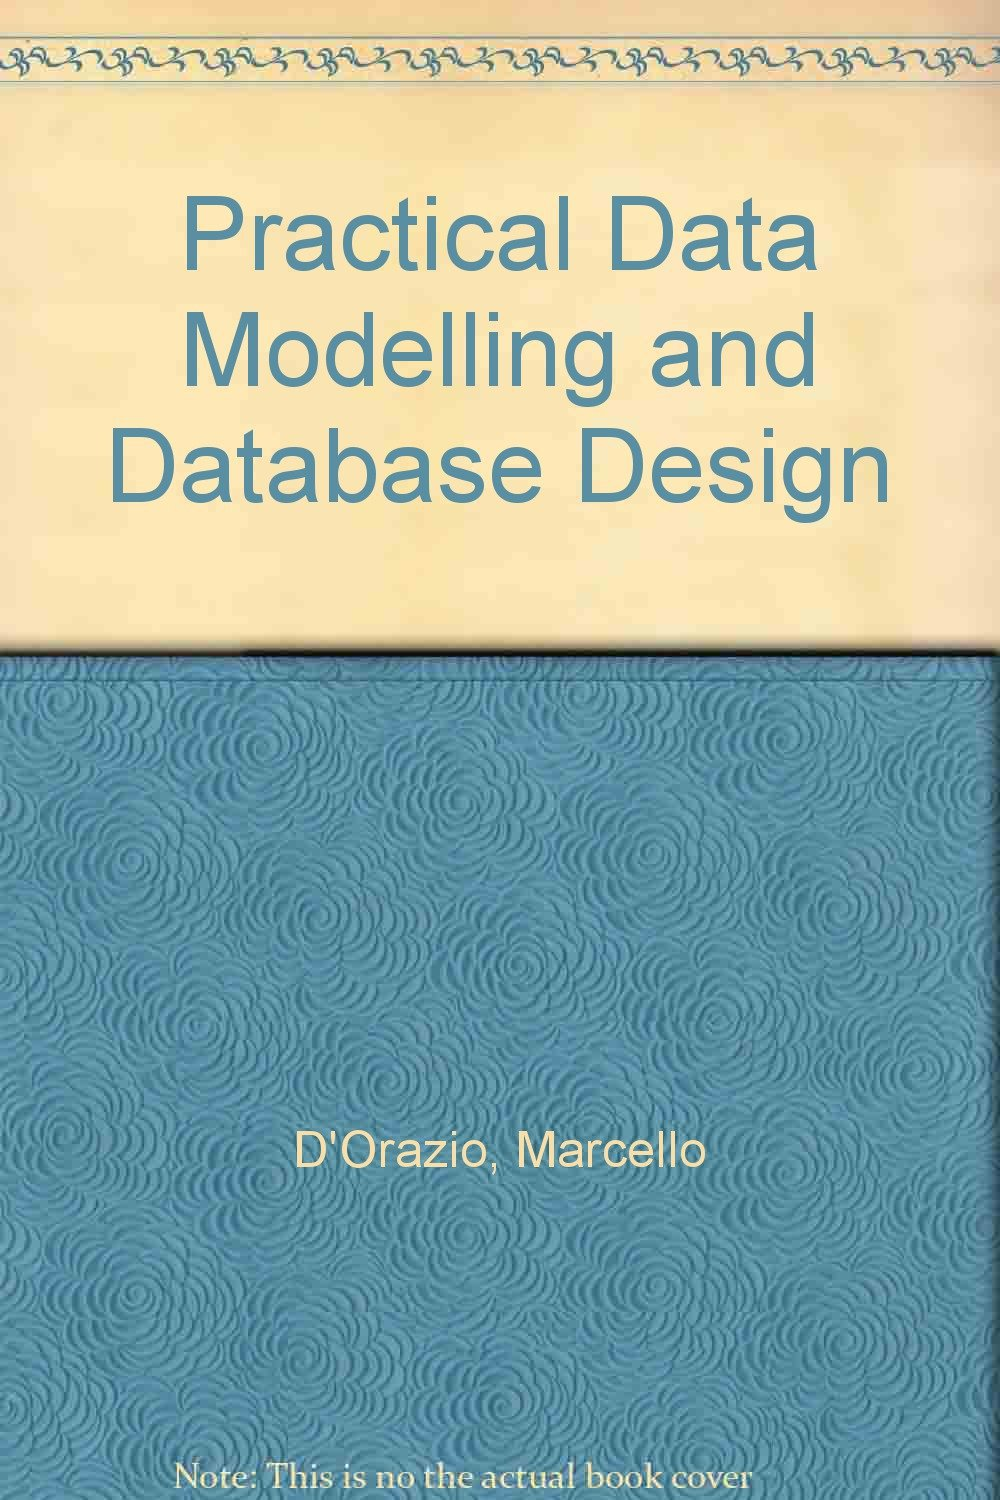 Practical Data Modelling and Database Design